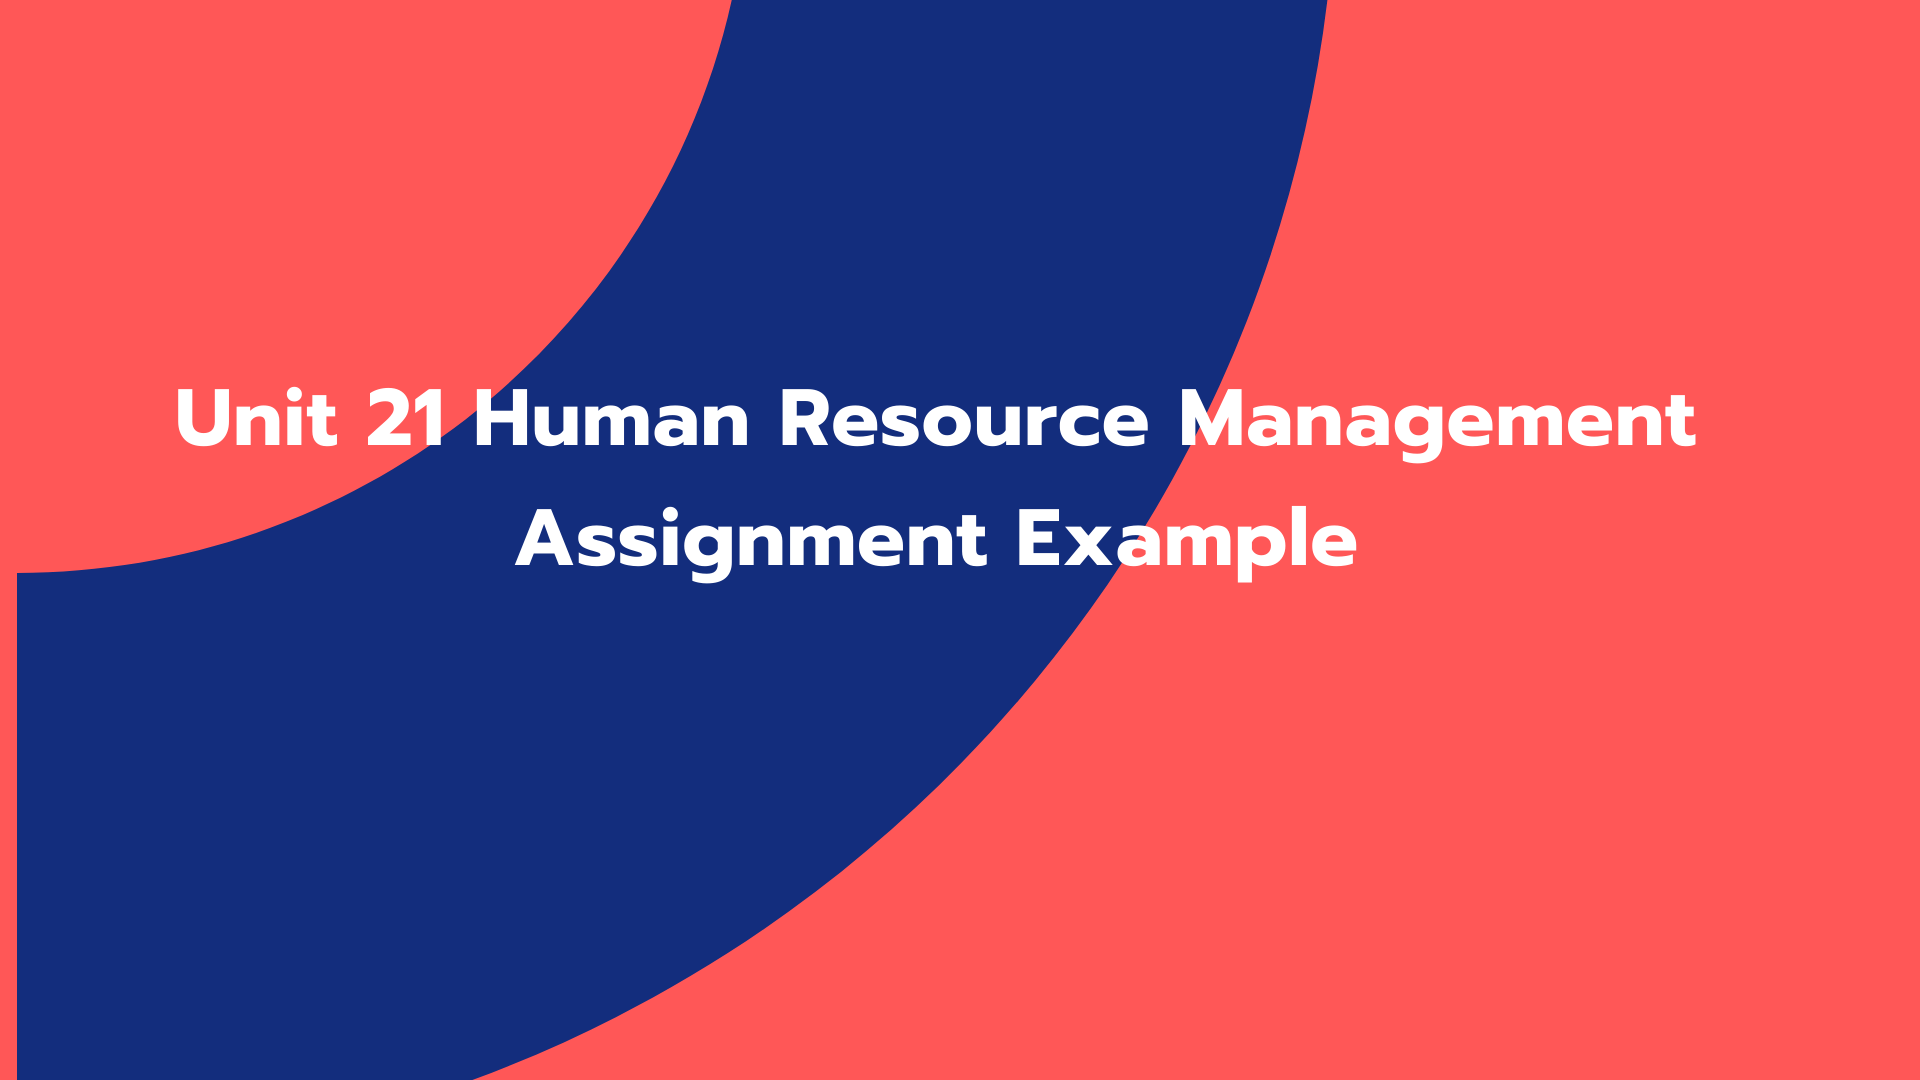 Unit 21 Human Resource Management Assignment Example